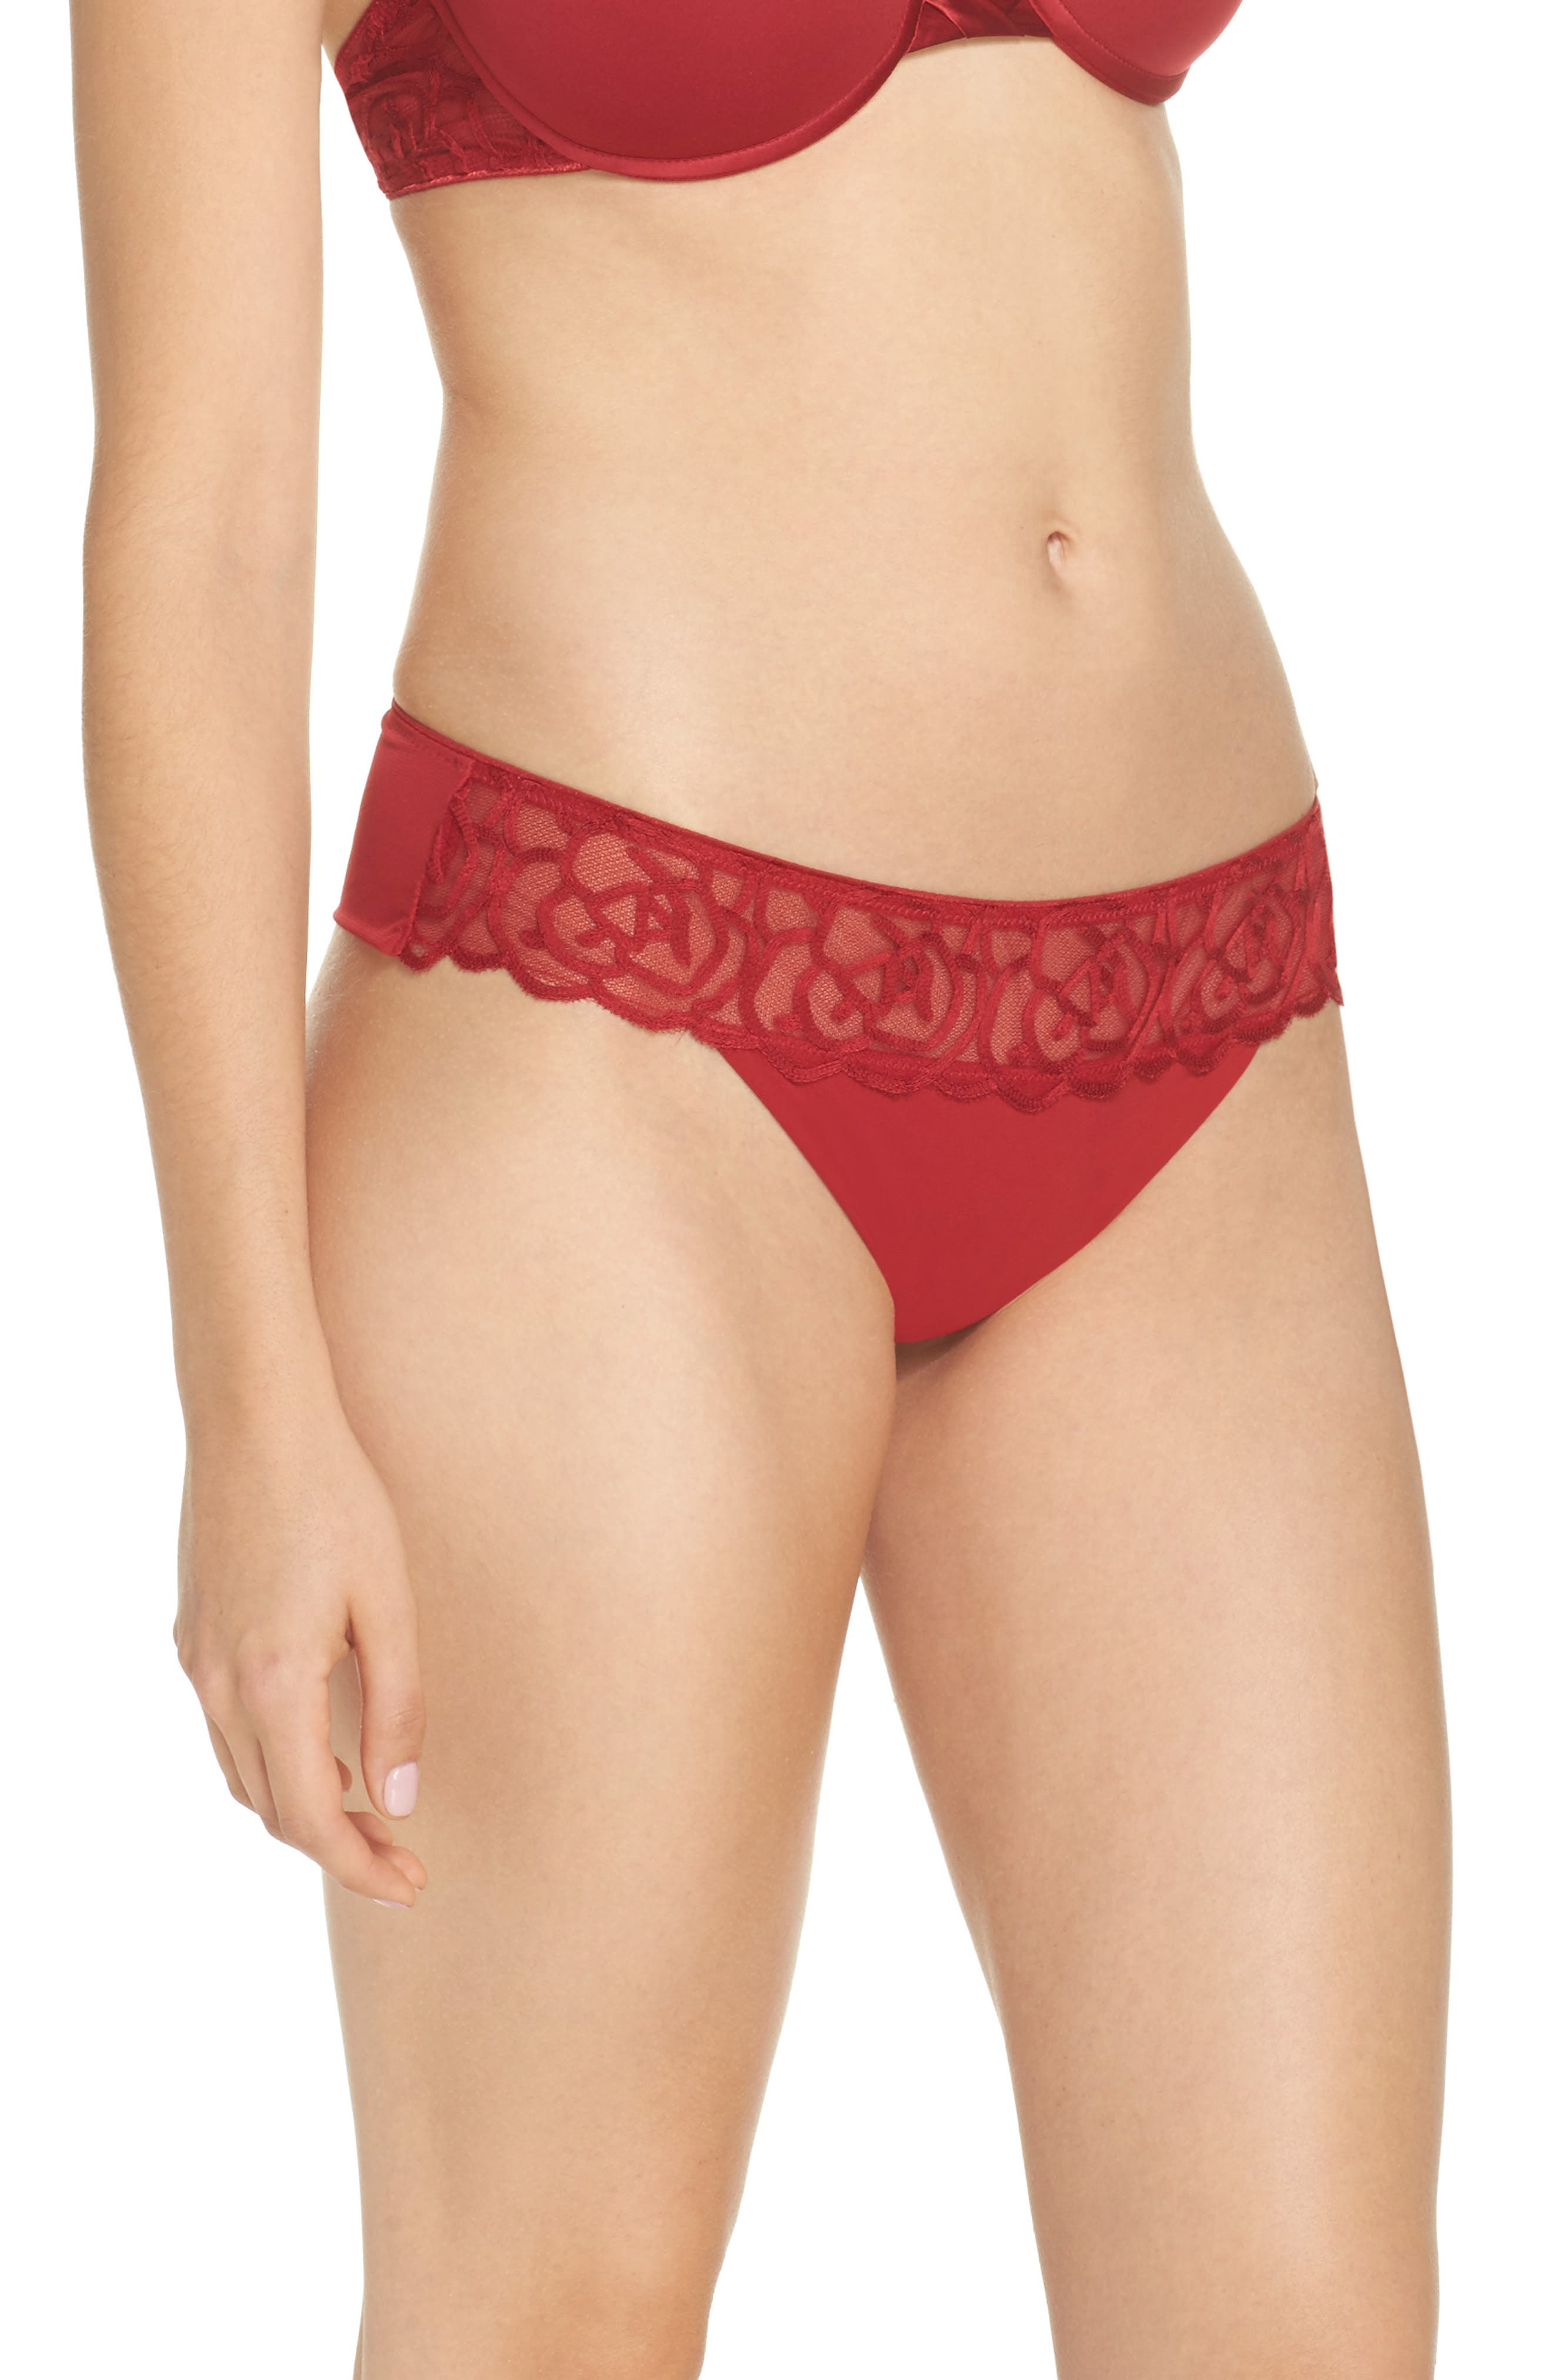 Chantelle Luxembourg Thong,                             Alternate thumbnail 3, color,                             618